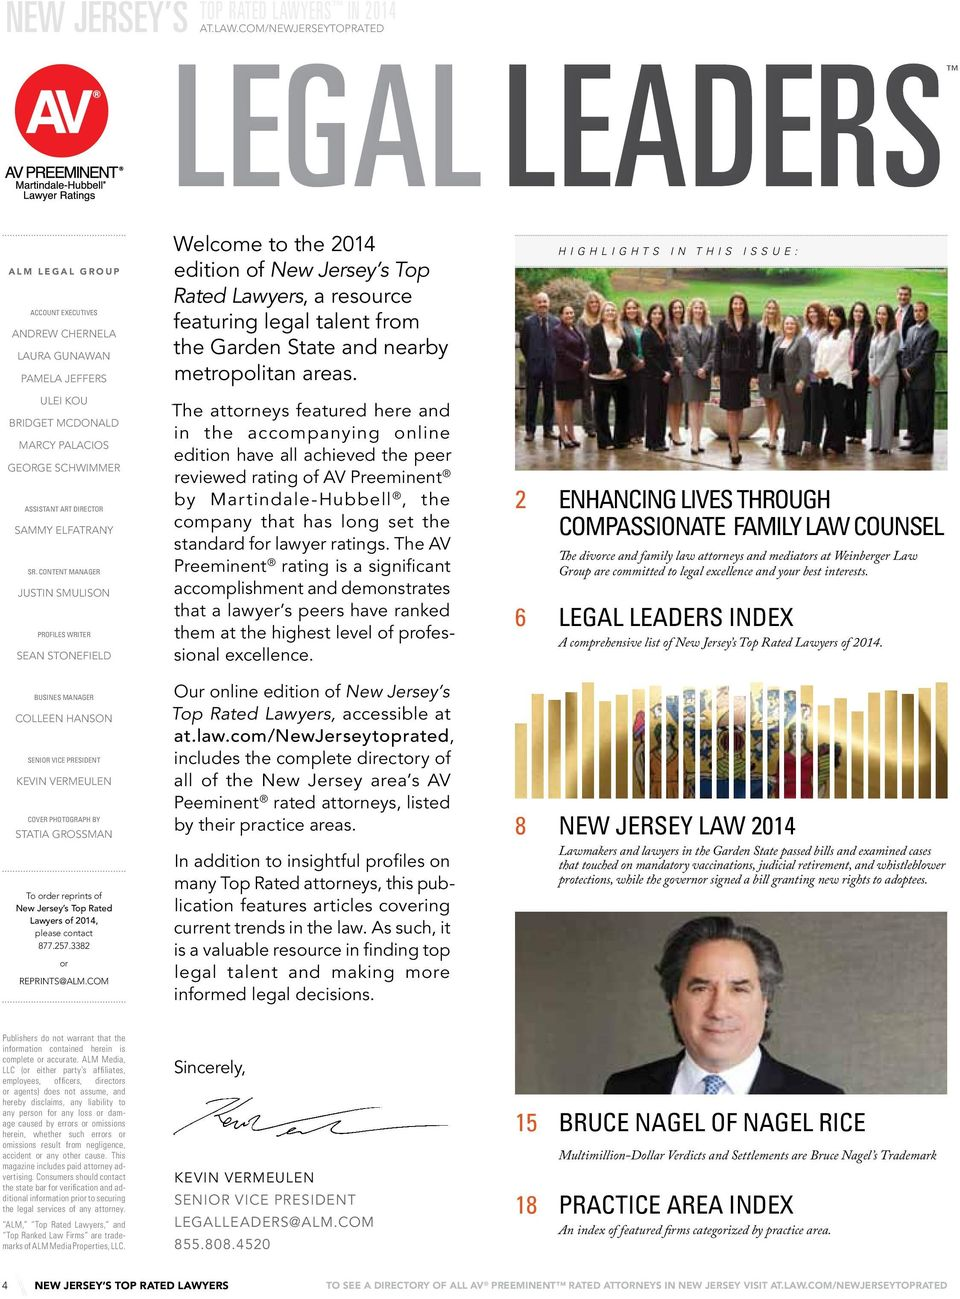 com/newjerseytoprated LEGAL LEADERS ALM LEGAL GROUP Account Executives Andrew Chernela laura gunawan Pamela Jeffers Welcome to the 2014 edition of New Jersey s Top Rated Lawyers, a resource featuring